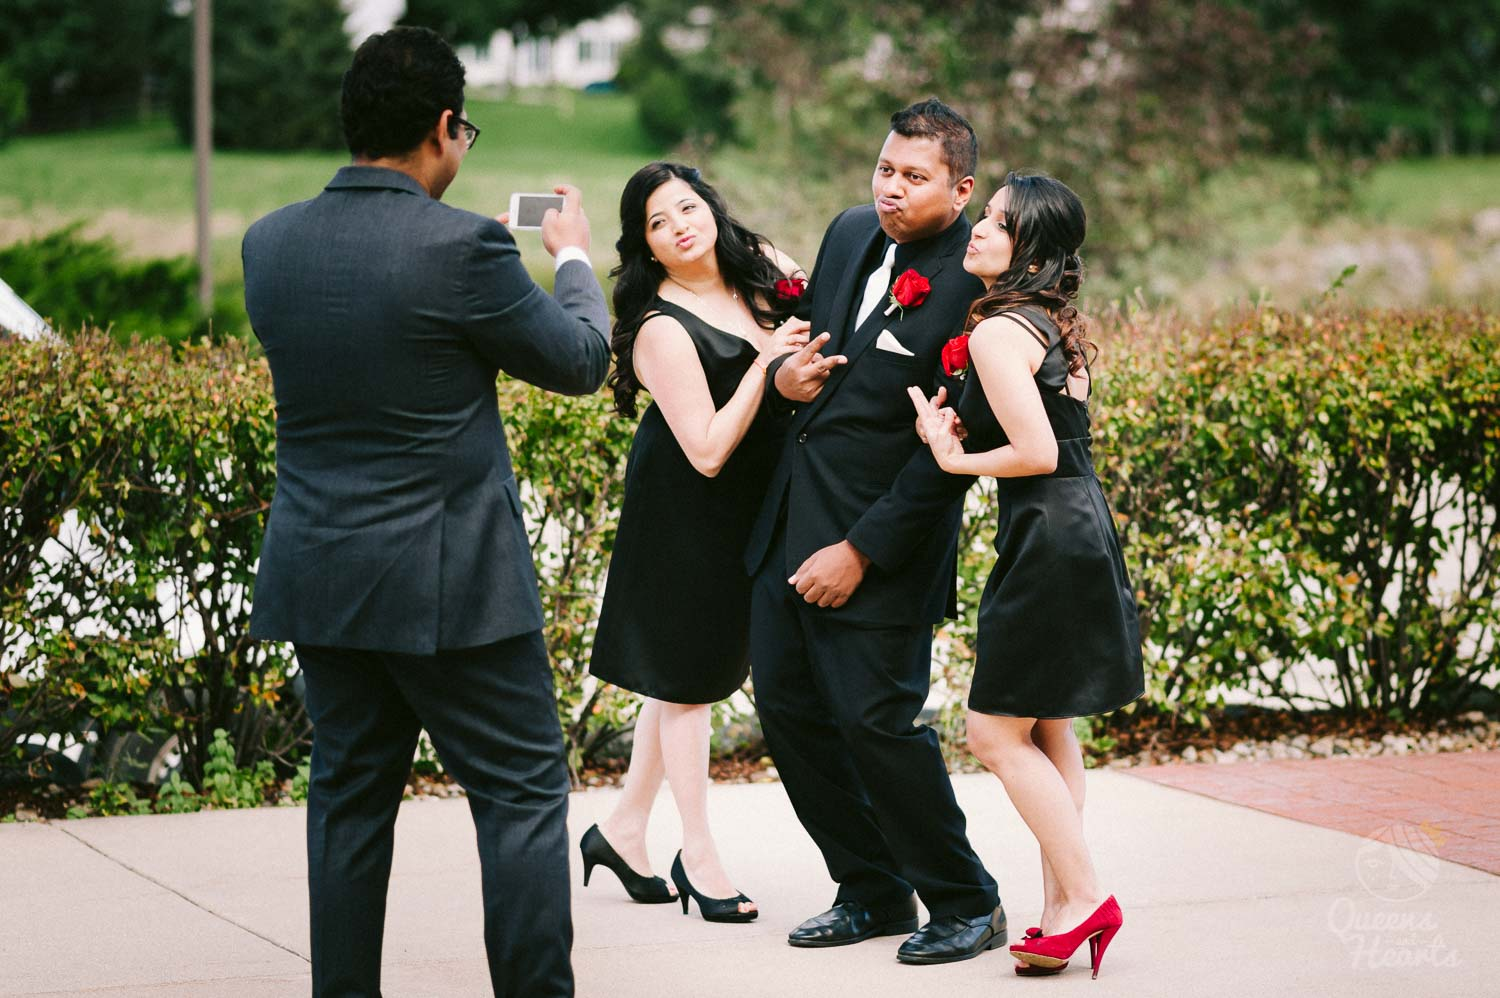 Concourse_hotel_High_Point_church_wedding_photography_Sally_Sunil_by_Queens_Hearts_Photography-0078